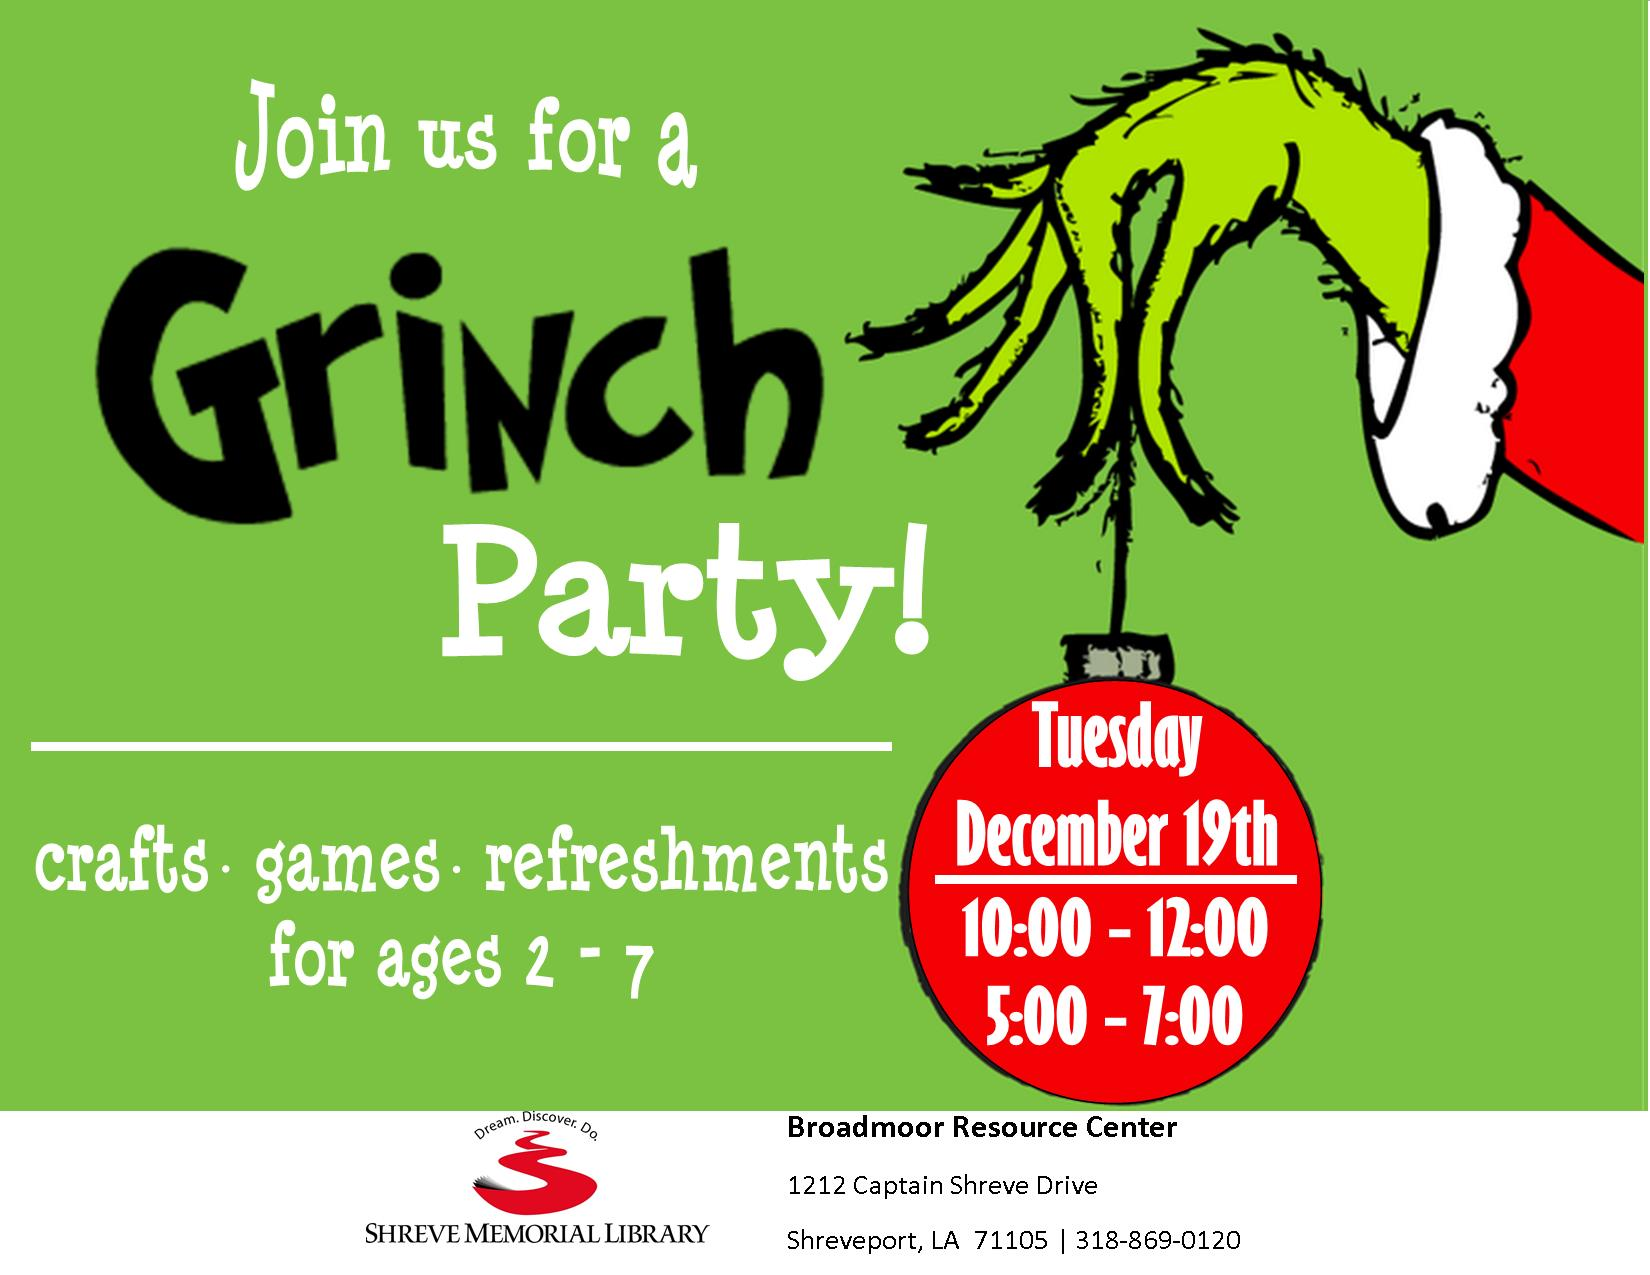 Grinch_Party_2017.jpg